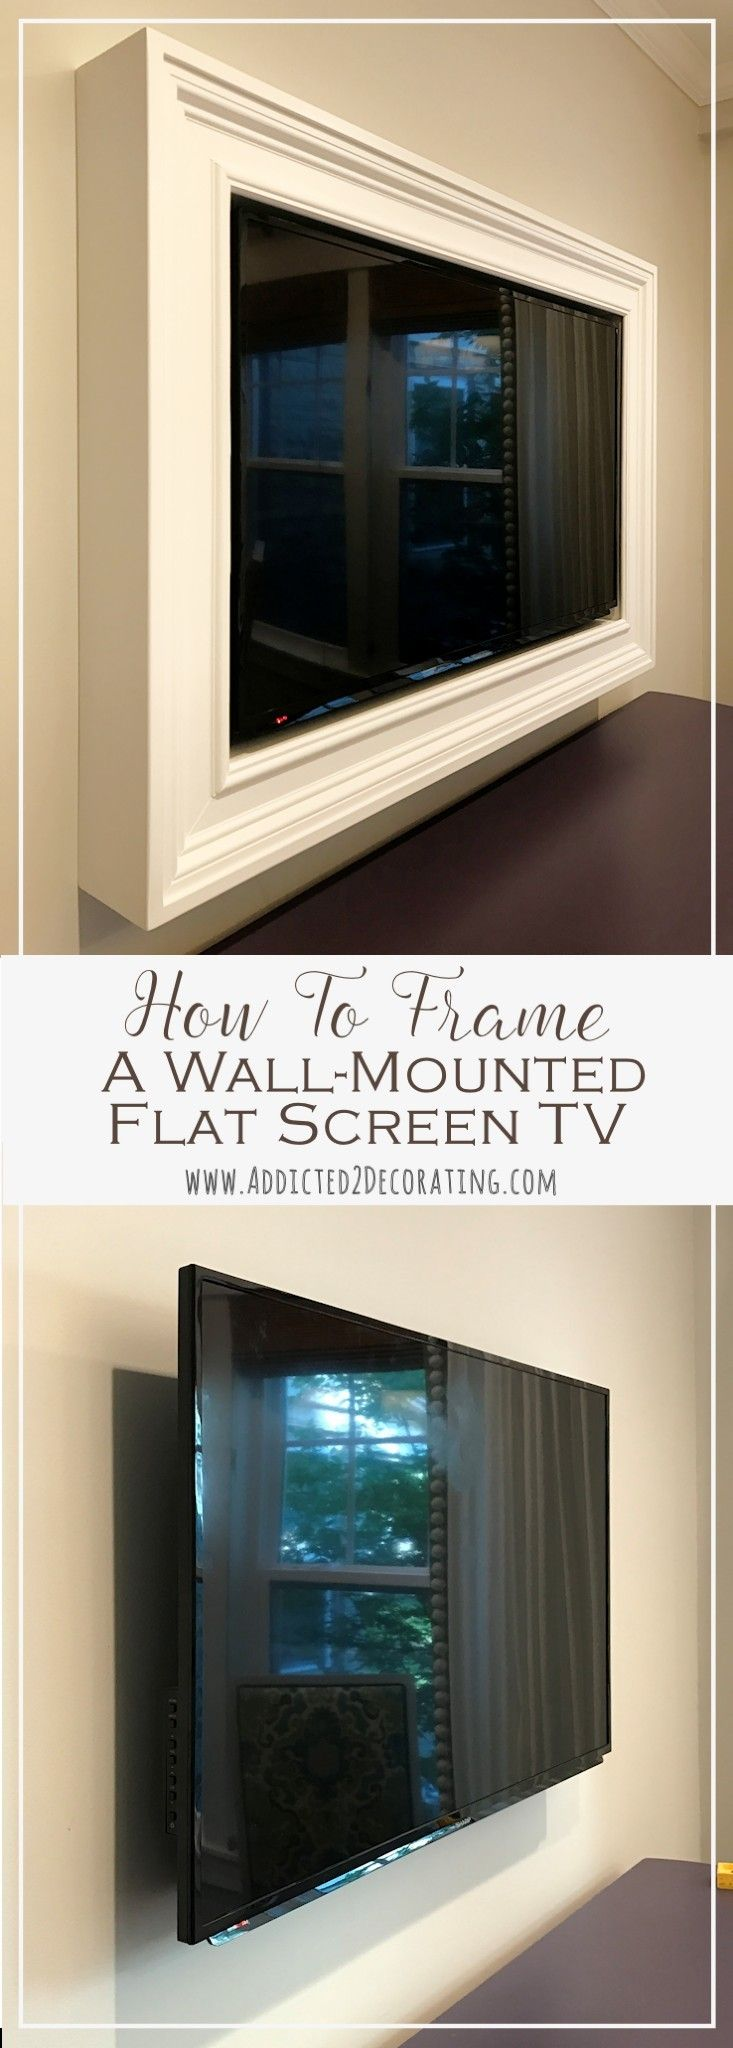 best home diy images on pinterest home ideas homes and tv